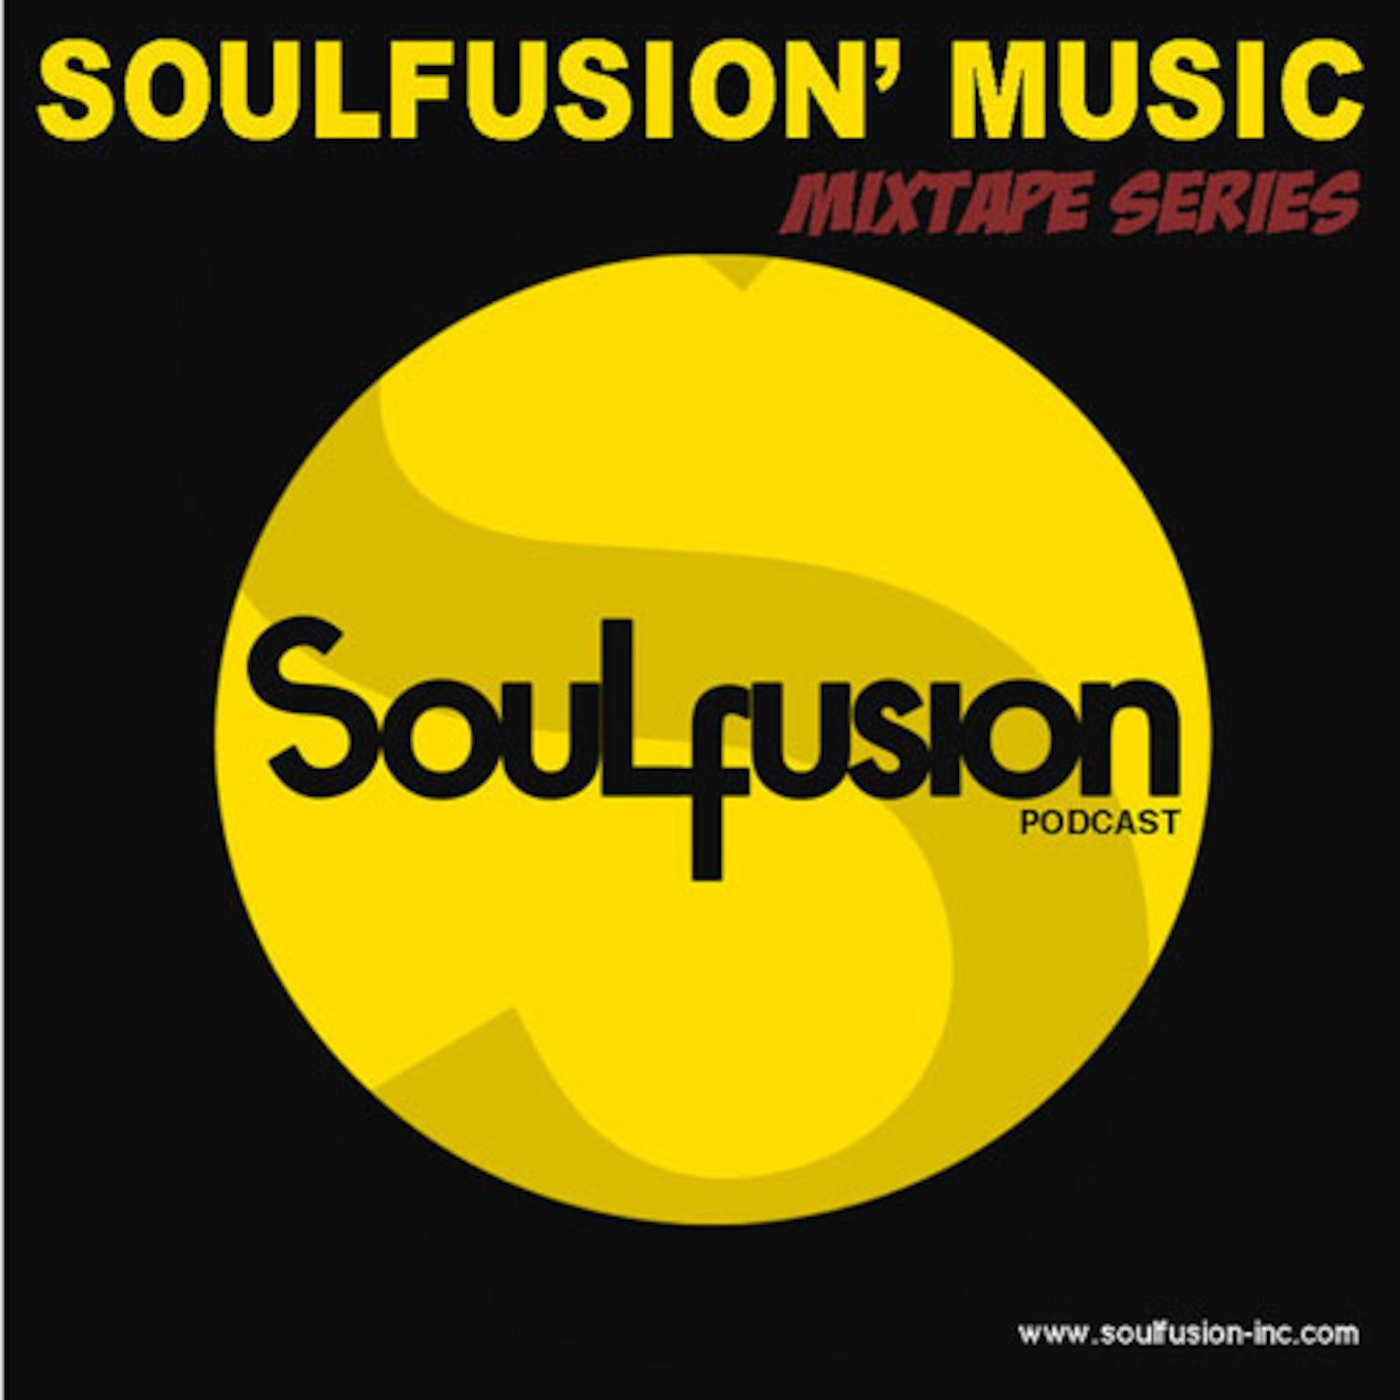 Soulfusion's Podcast